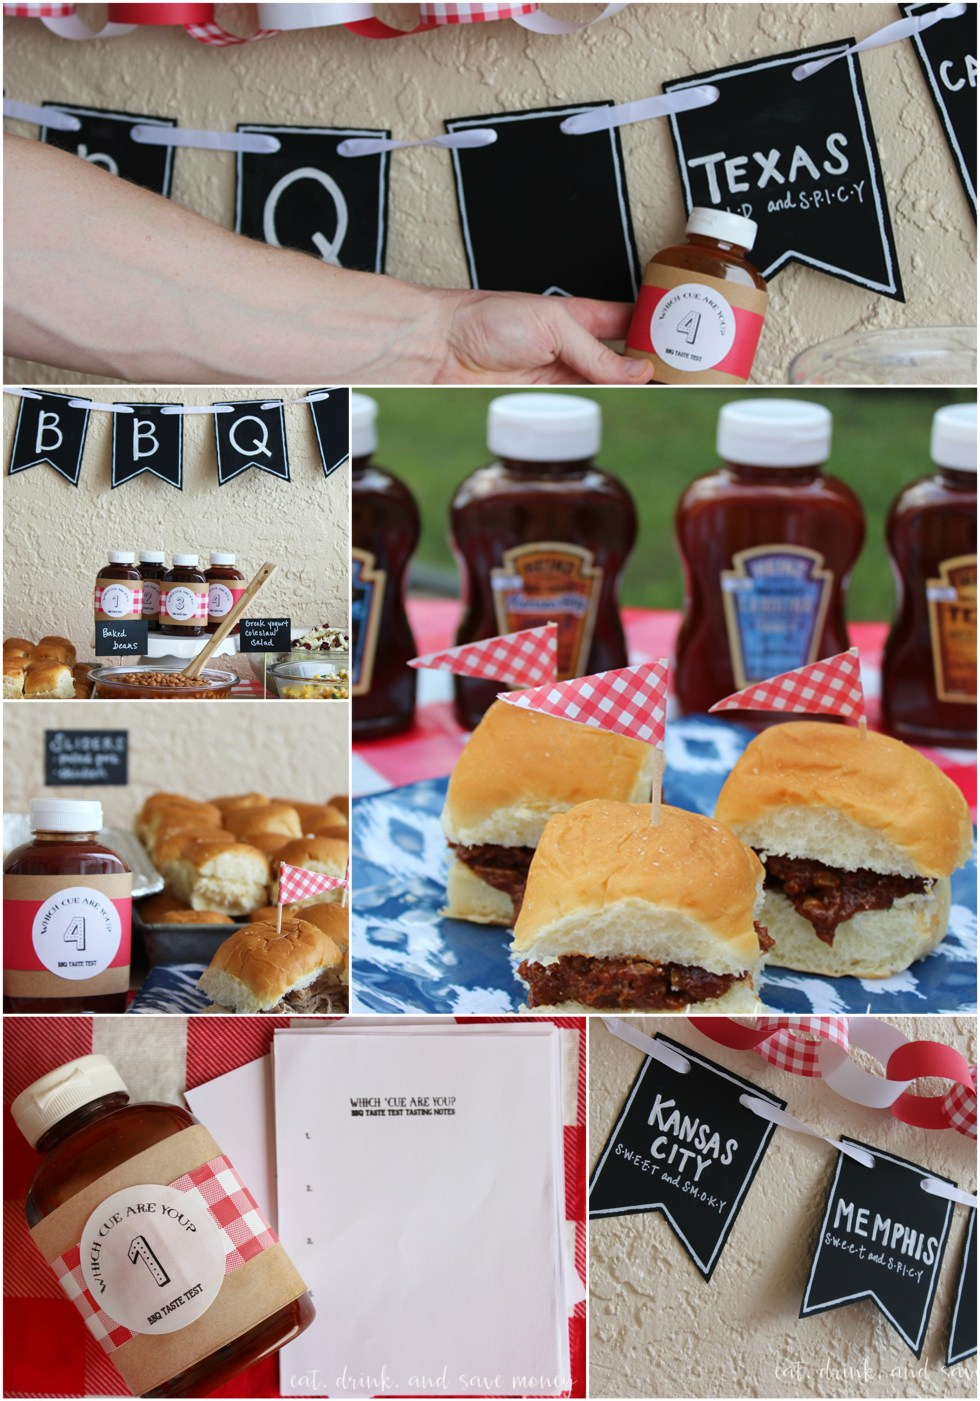 BBQ taste testing party collage